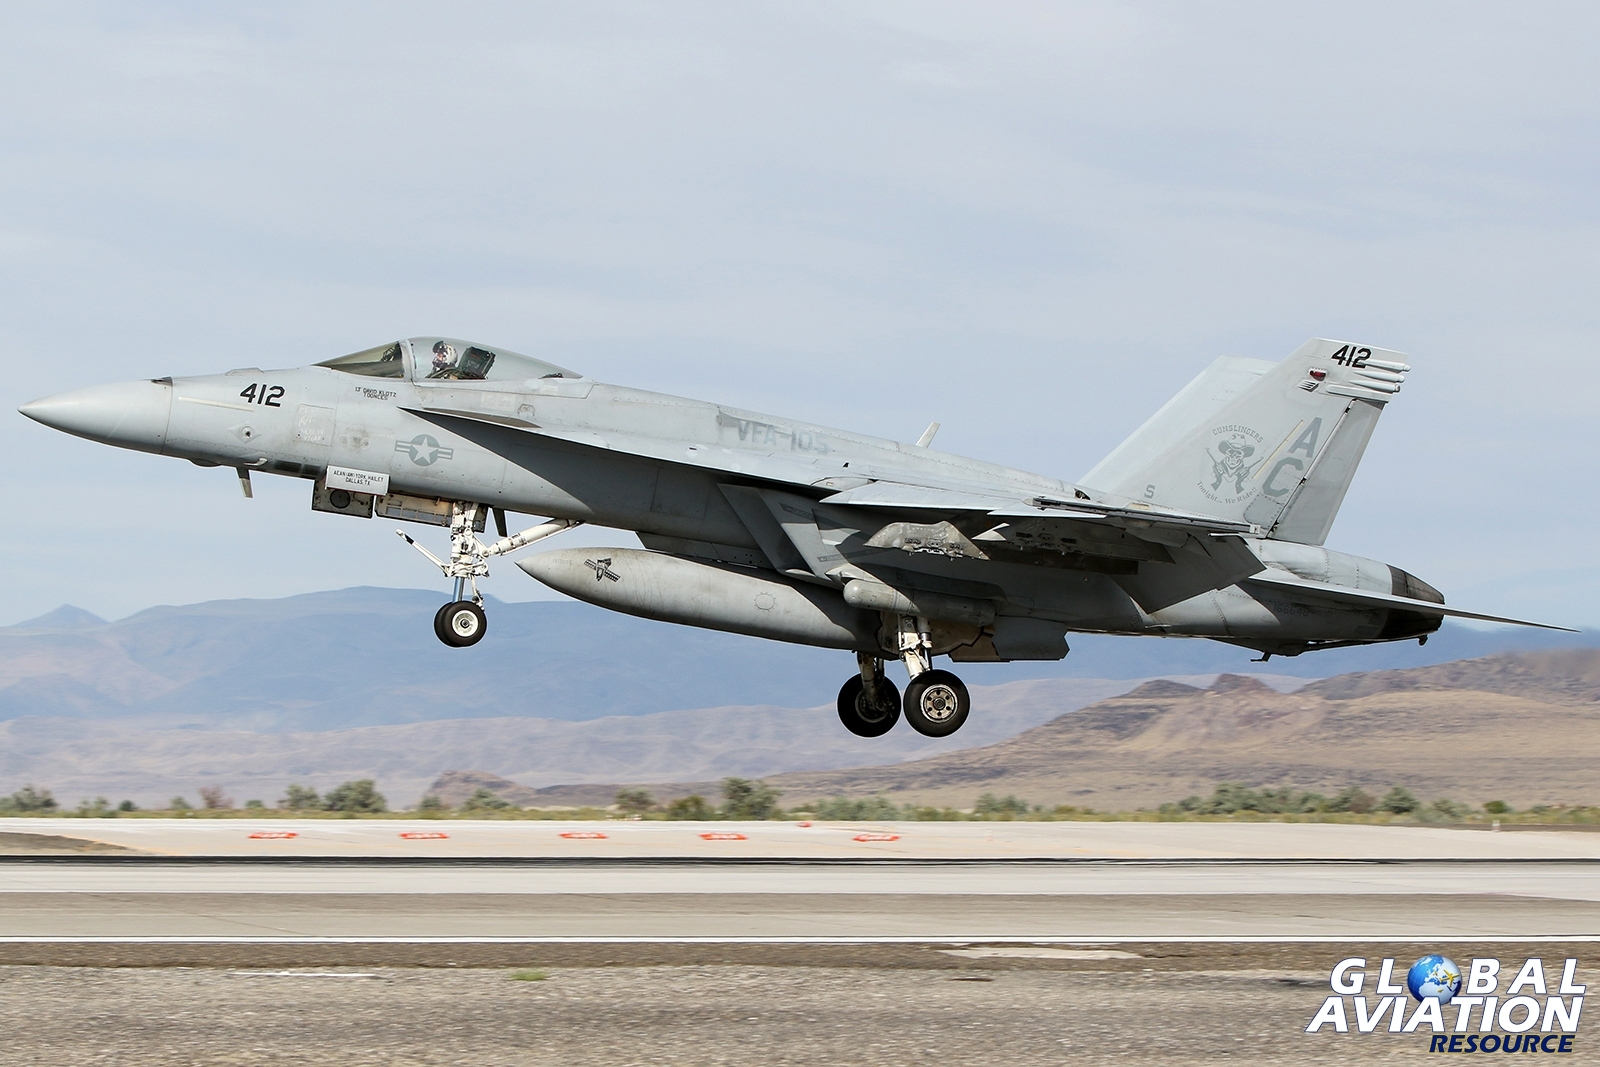 F/A-18E Super Hornet from VFA-105 about to touch down at Fallon © Paul Dunn - Global Aviation Resource